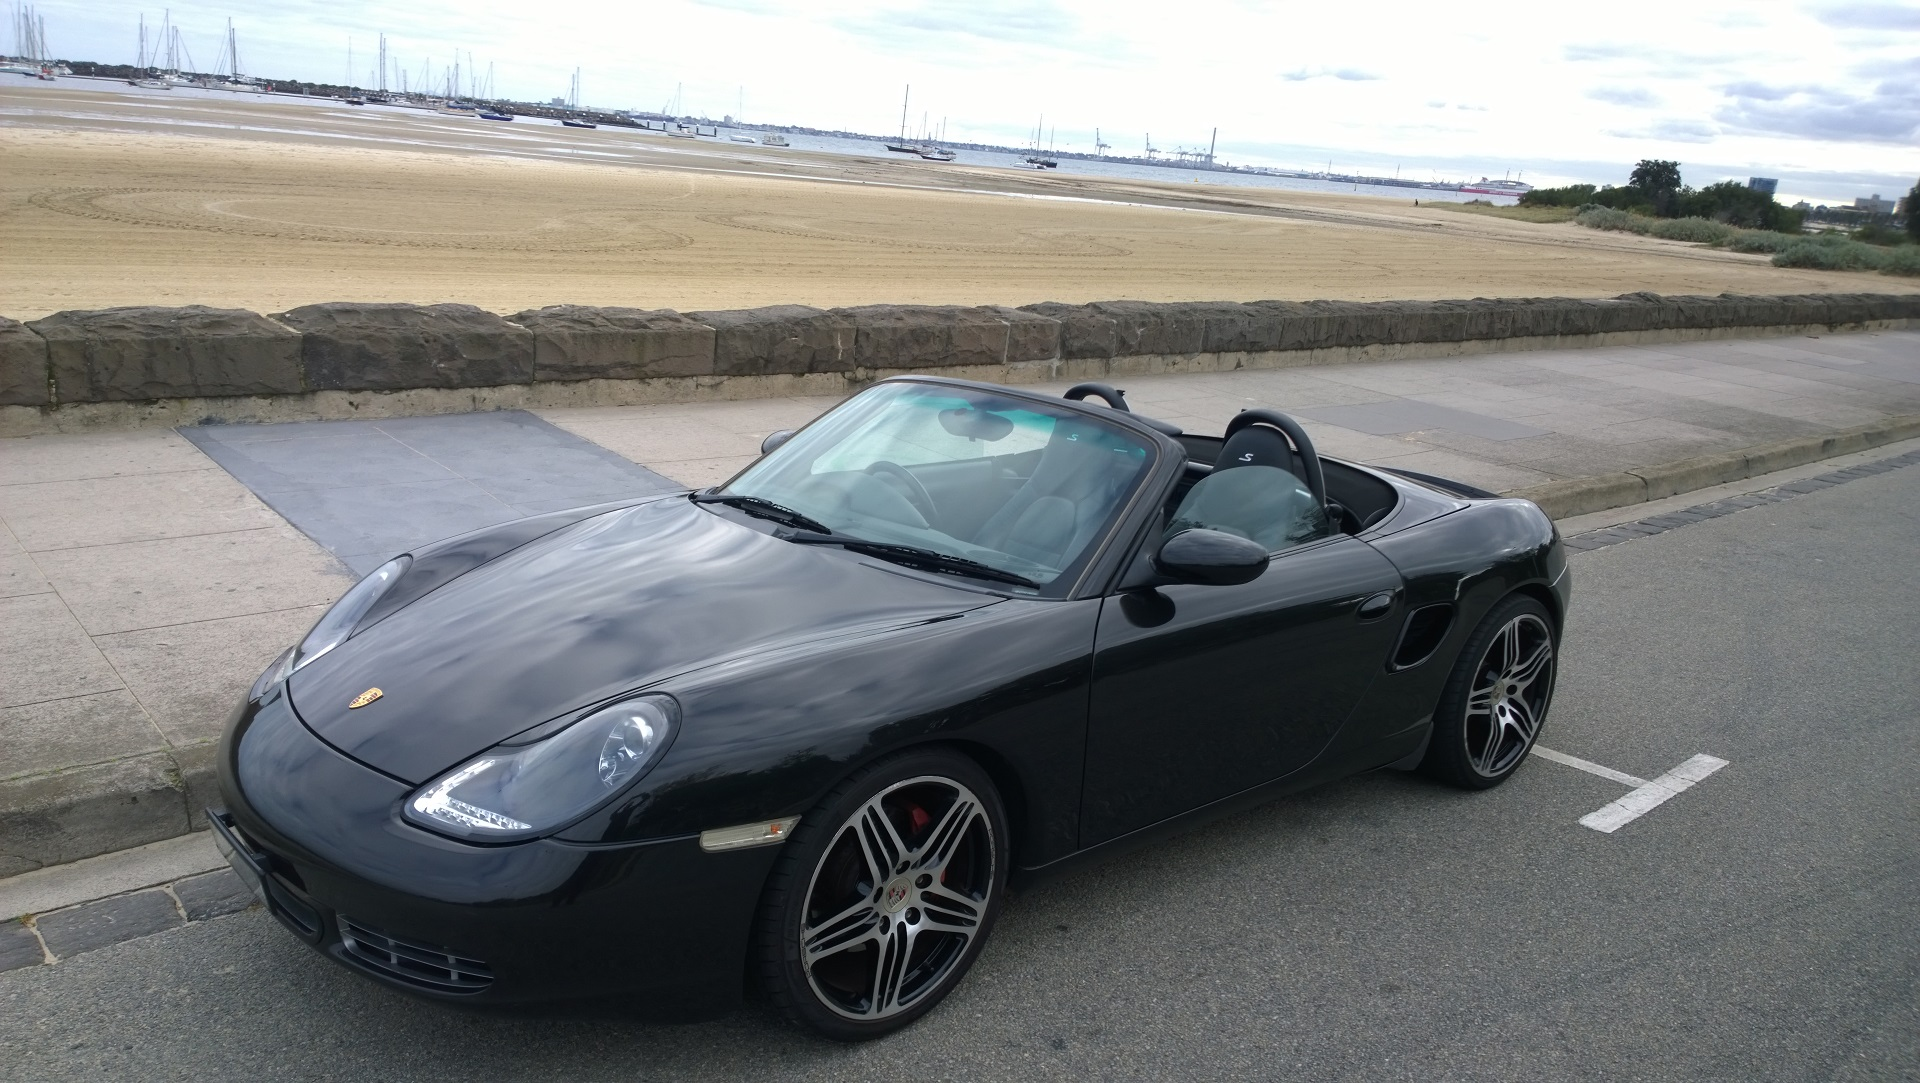 Picture of Simon's 2001 Porsche Boxster S